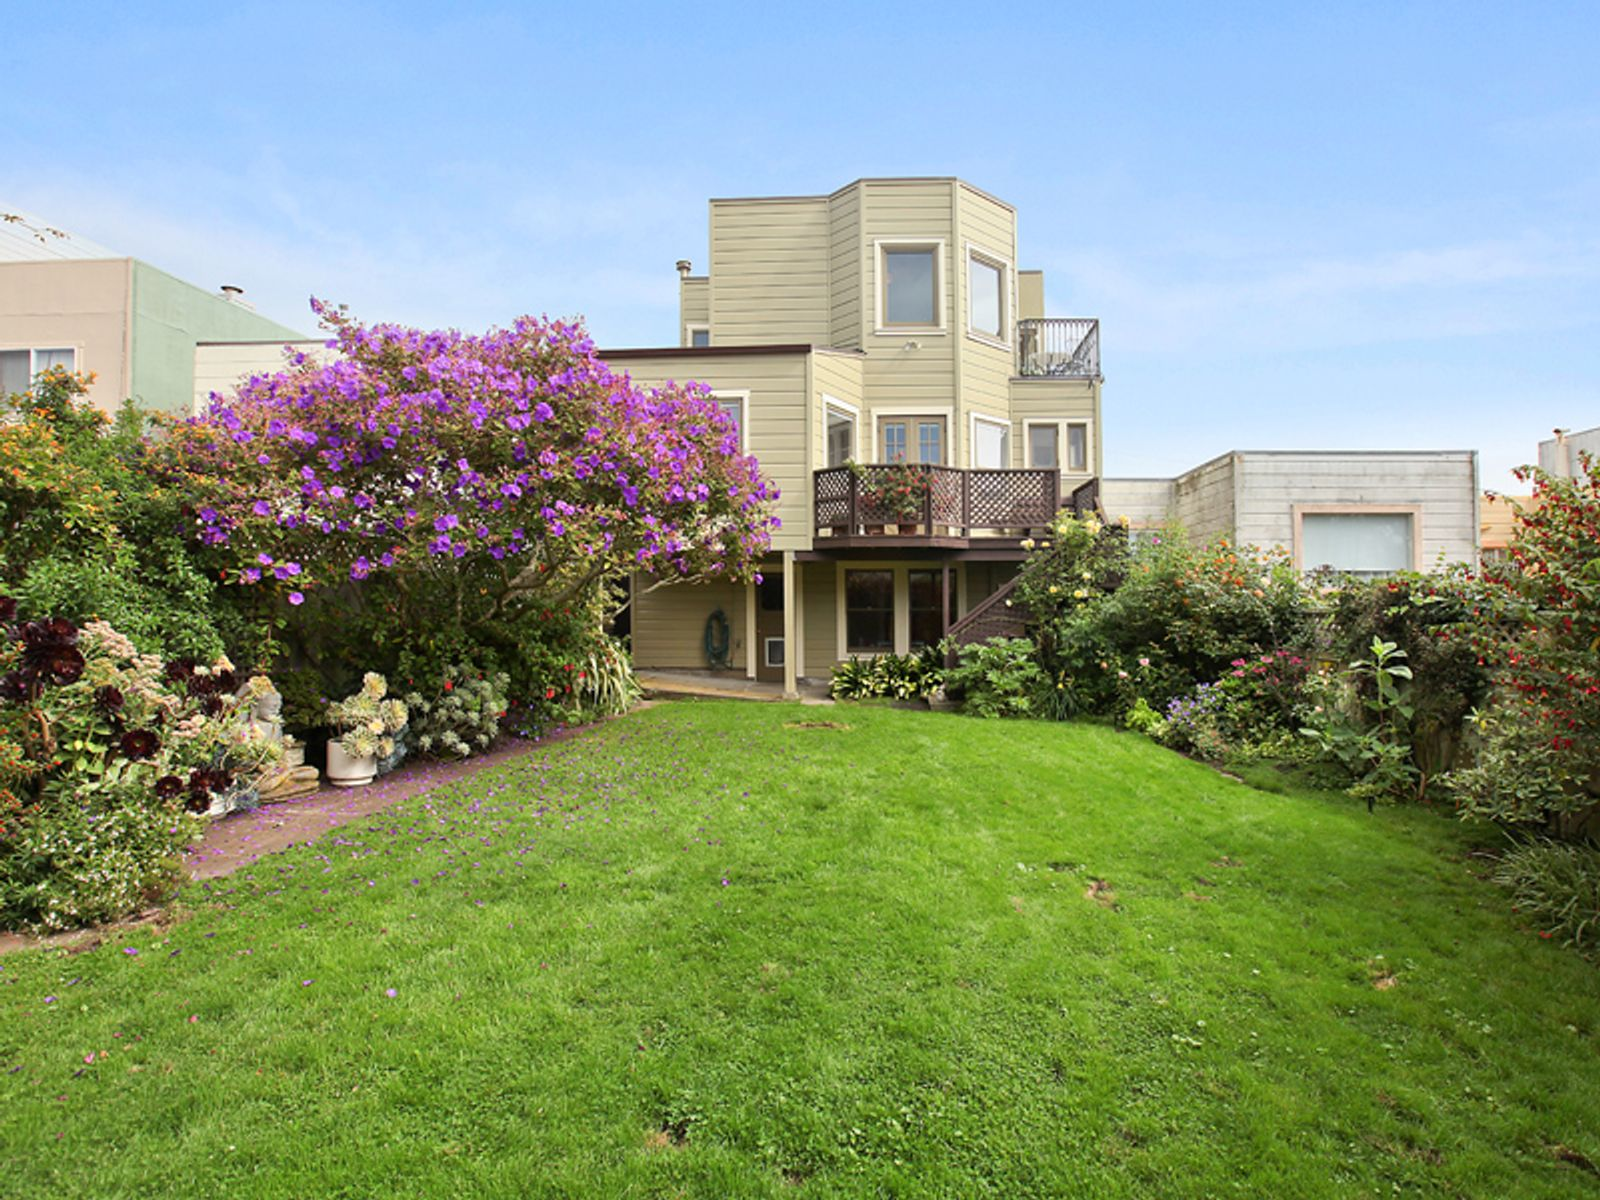 Grand Scale Home in Sutro Heights